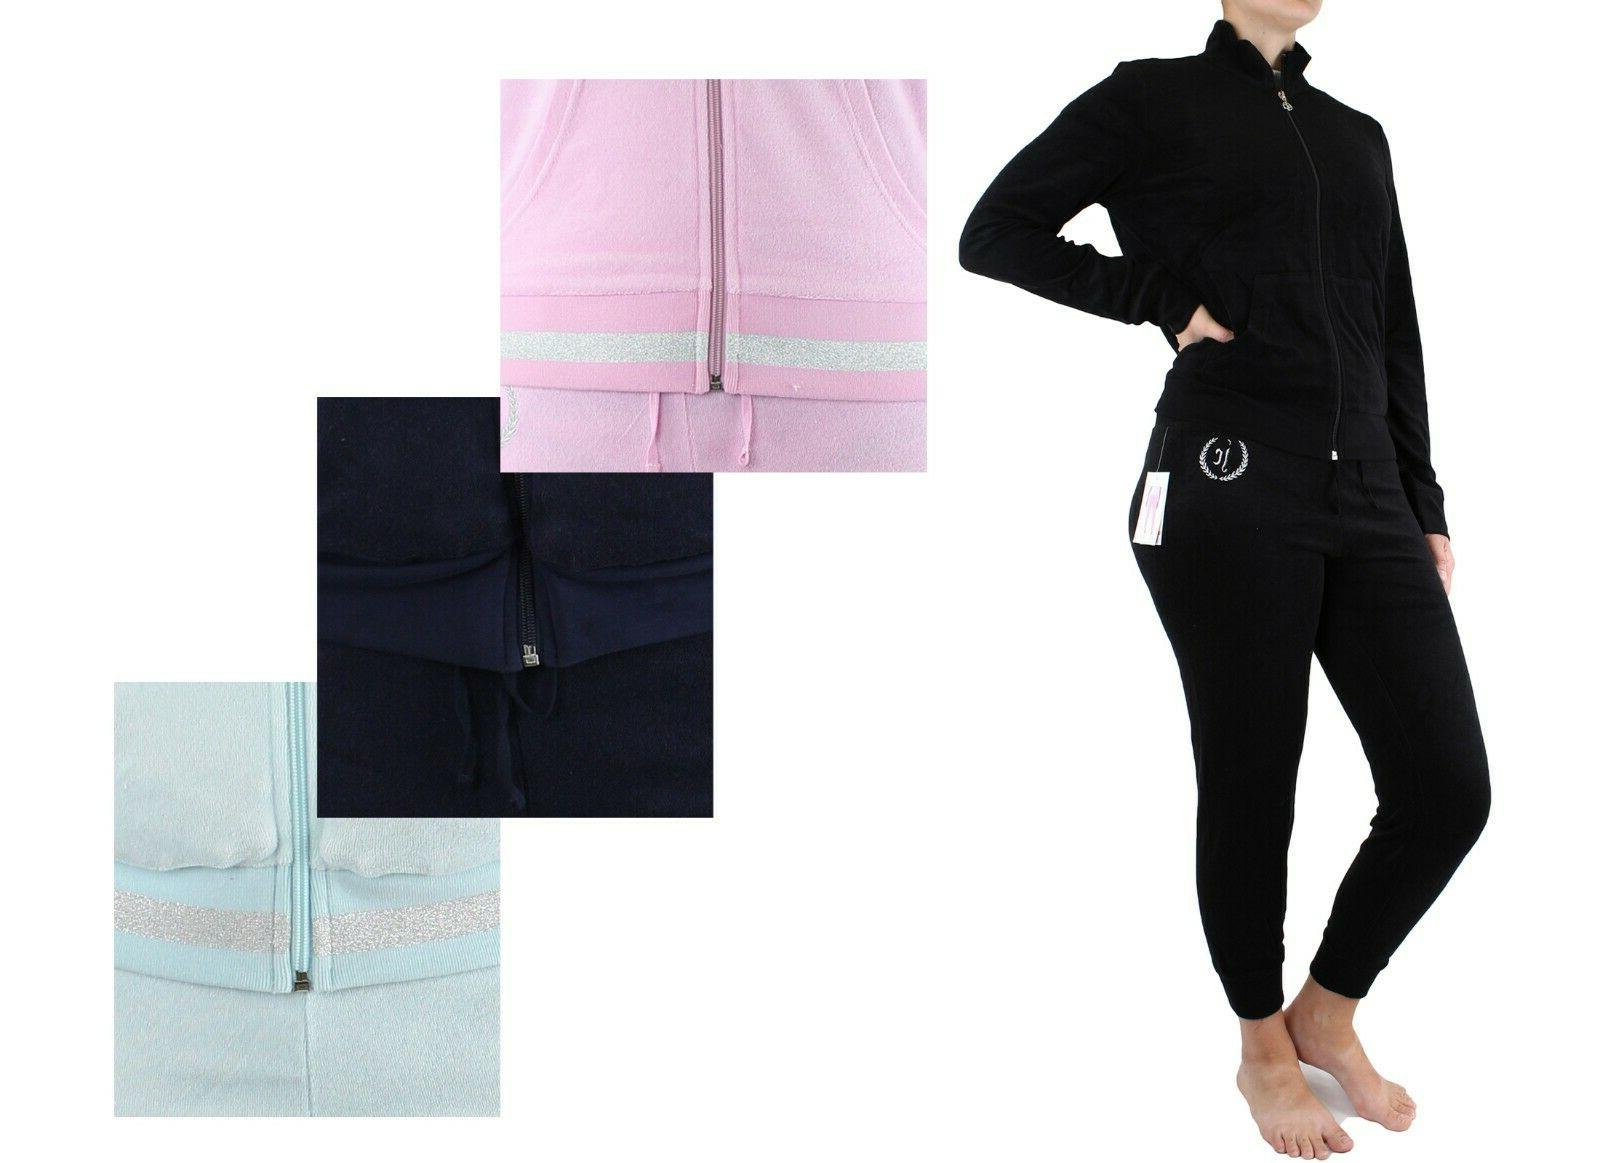 microterry full zip tracksuit sweatpants jacket pants